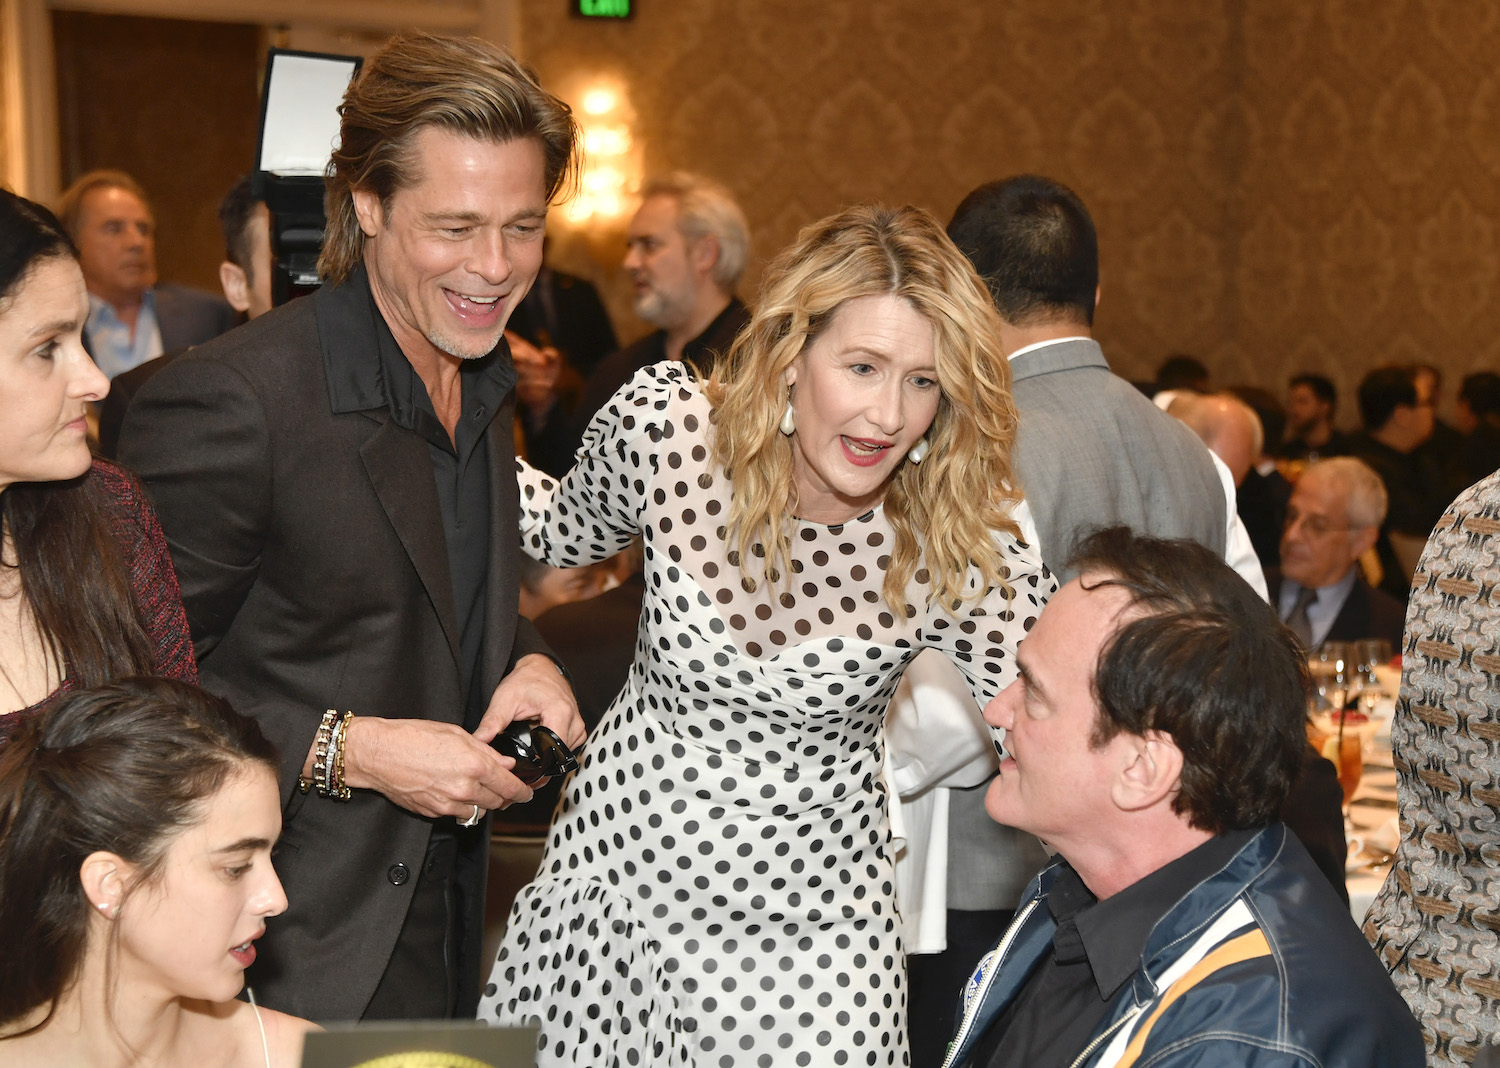 LOS ANGELES, CALIFORNIA - JANUARY 03: (L-R) Actor Brad Pitt, actor Laura Dern, and filmmaker Quentin Tarantino attend the 20th Annual AFI Awards at Four Seasons Hotel Los Angeles at Beverly Hills on January 03, 2020 in Los Angeles, California. (Photo by Frazer Harrison/Getty Images for AFI)